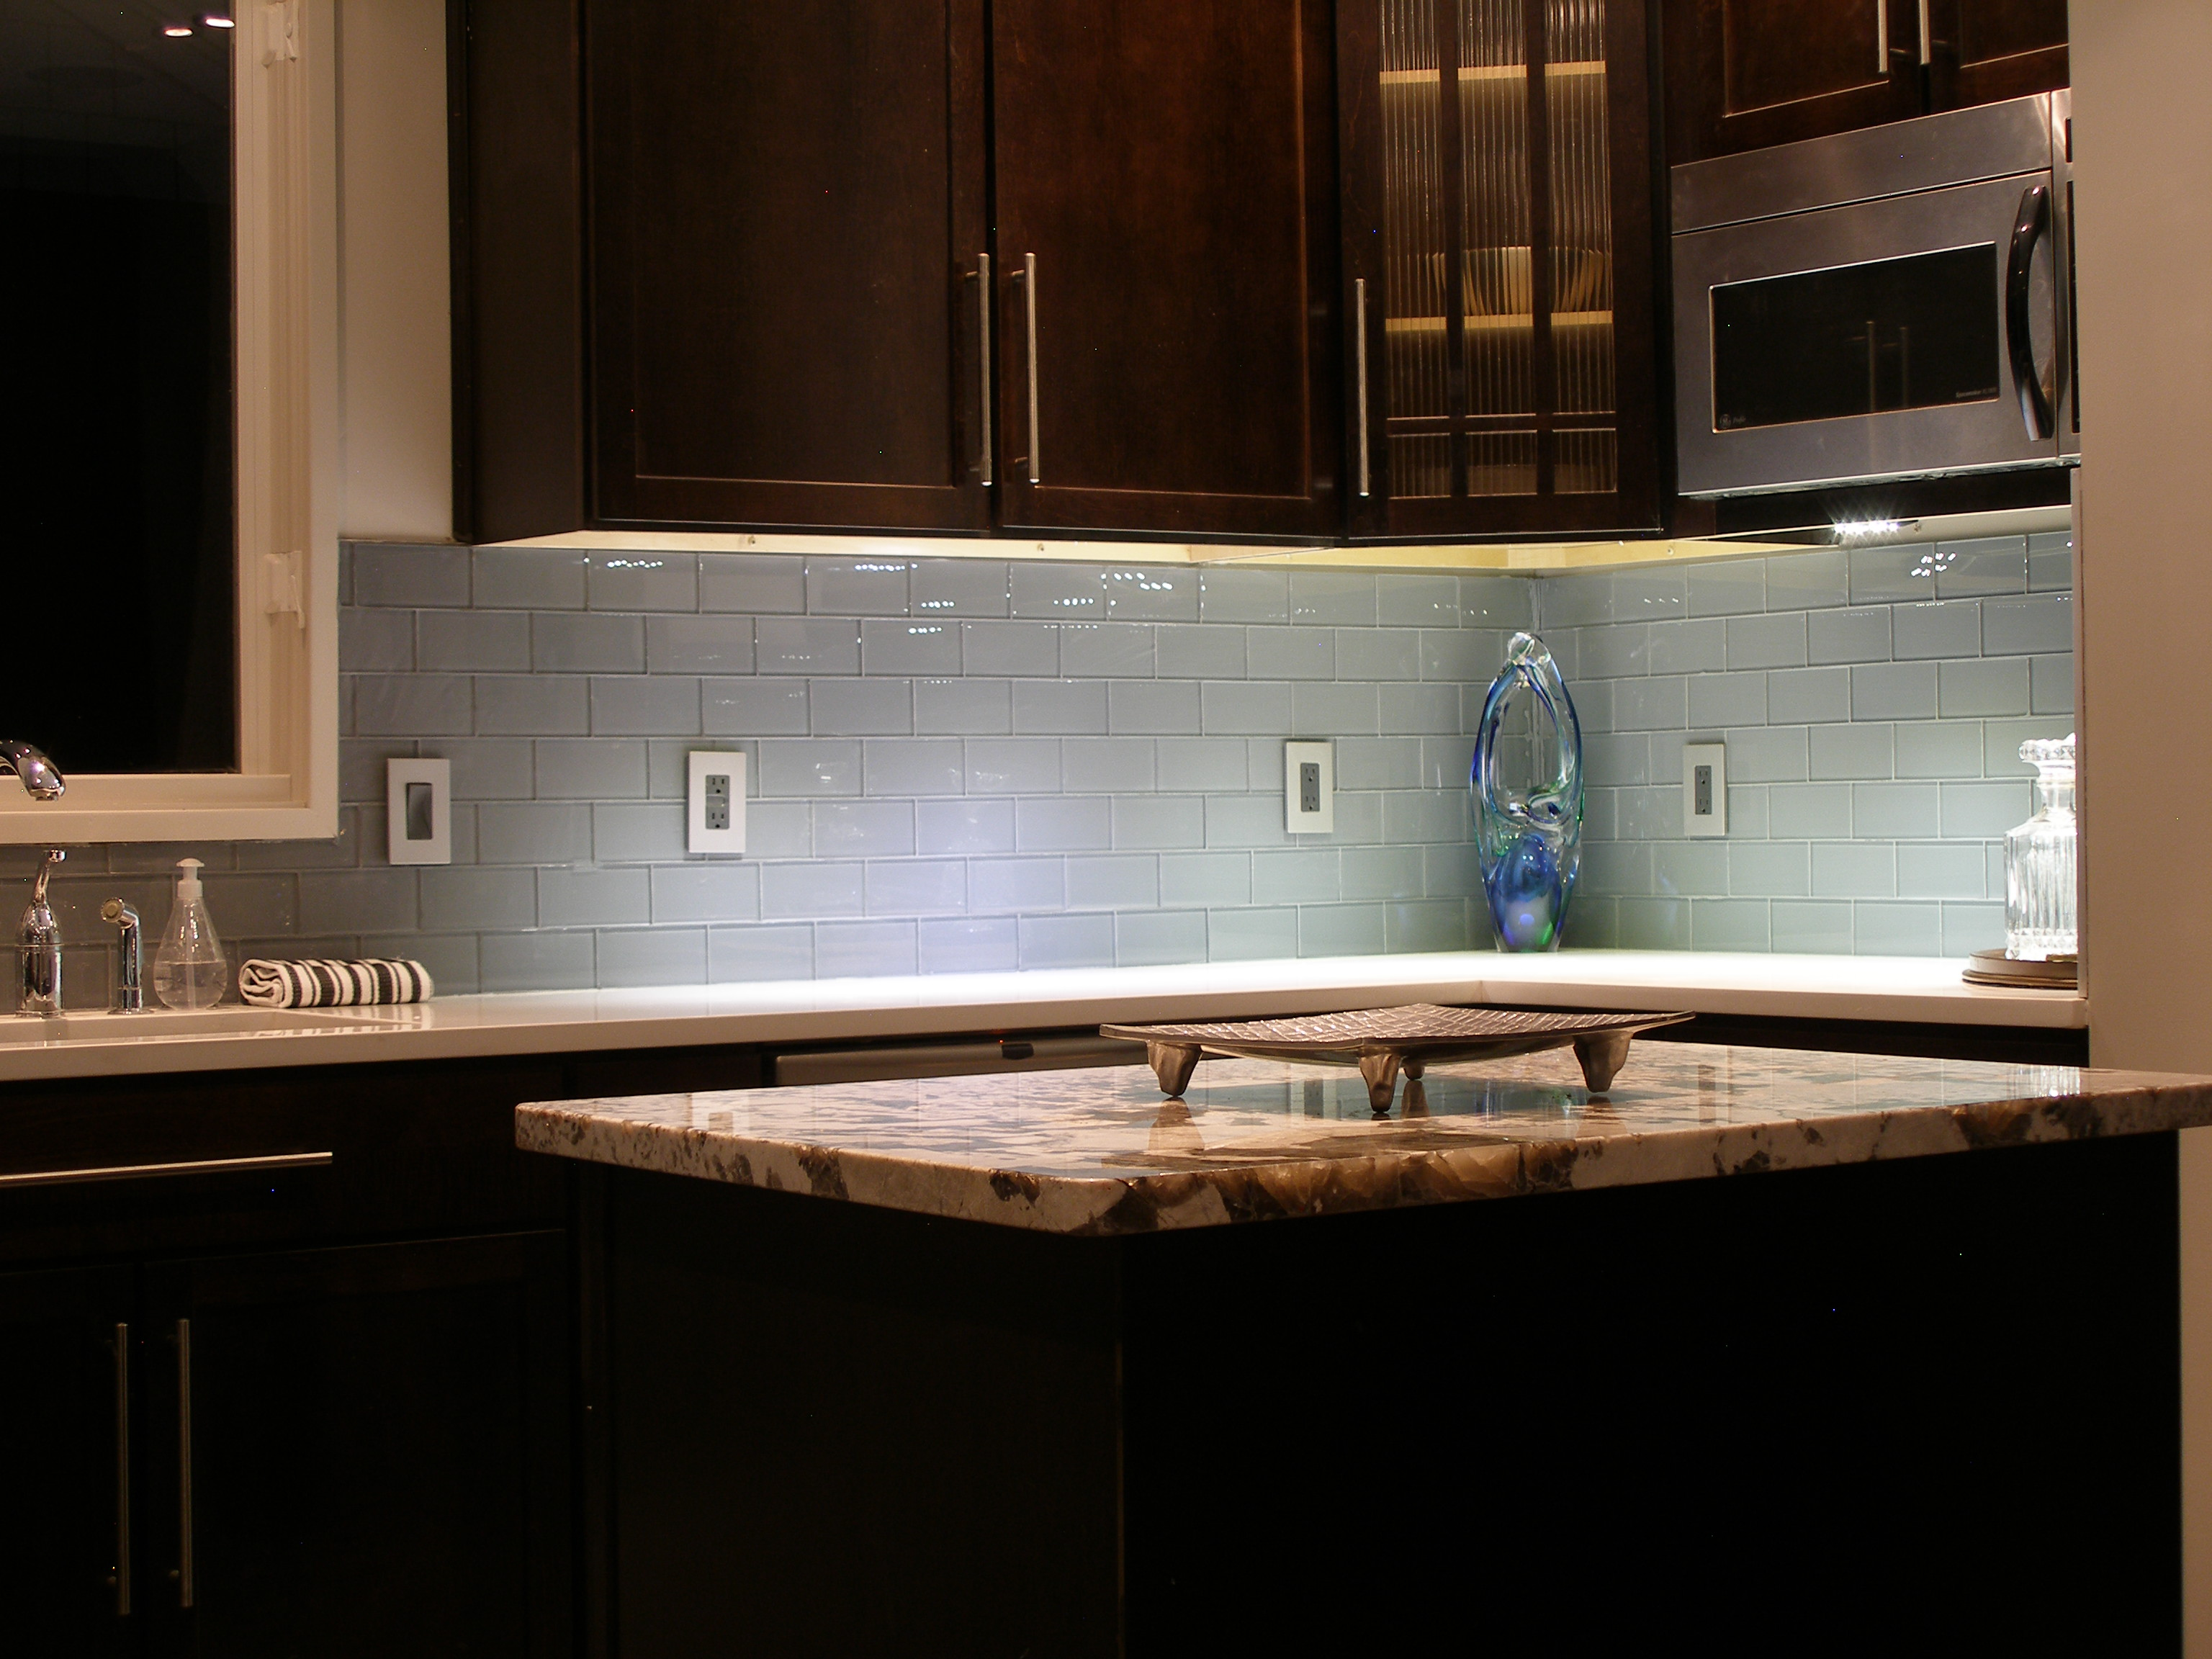 kitchen backsplash kitchen backsplash tiles Glass Tile Grey Kitchen Backsplash Design